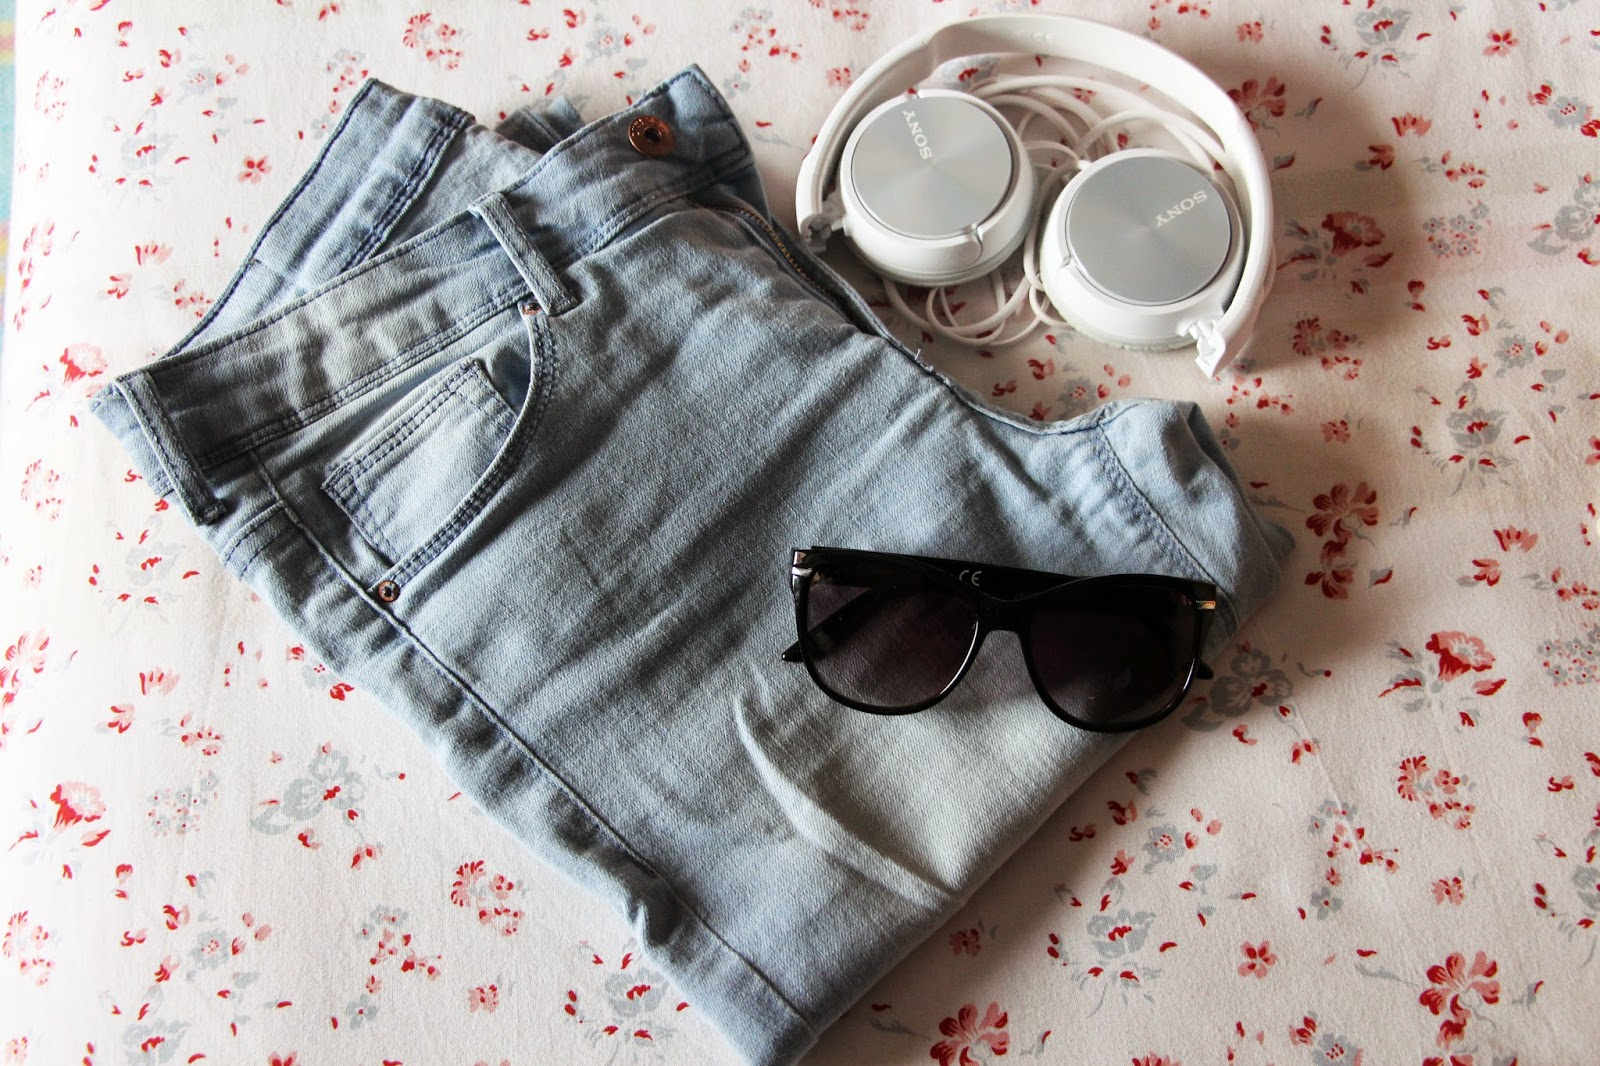 H&M jeans and sunglasses